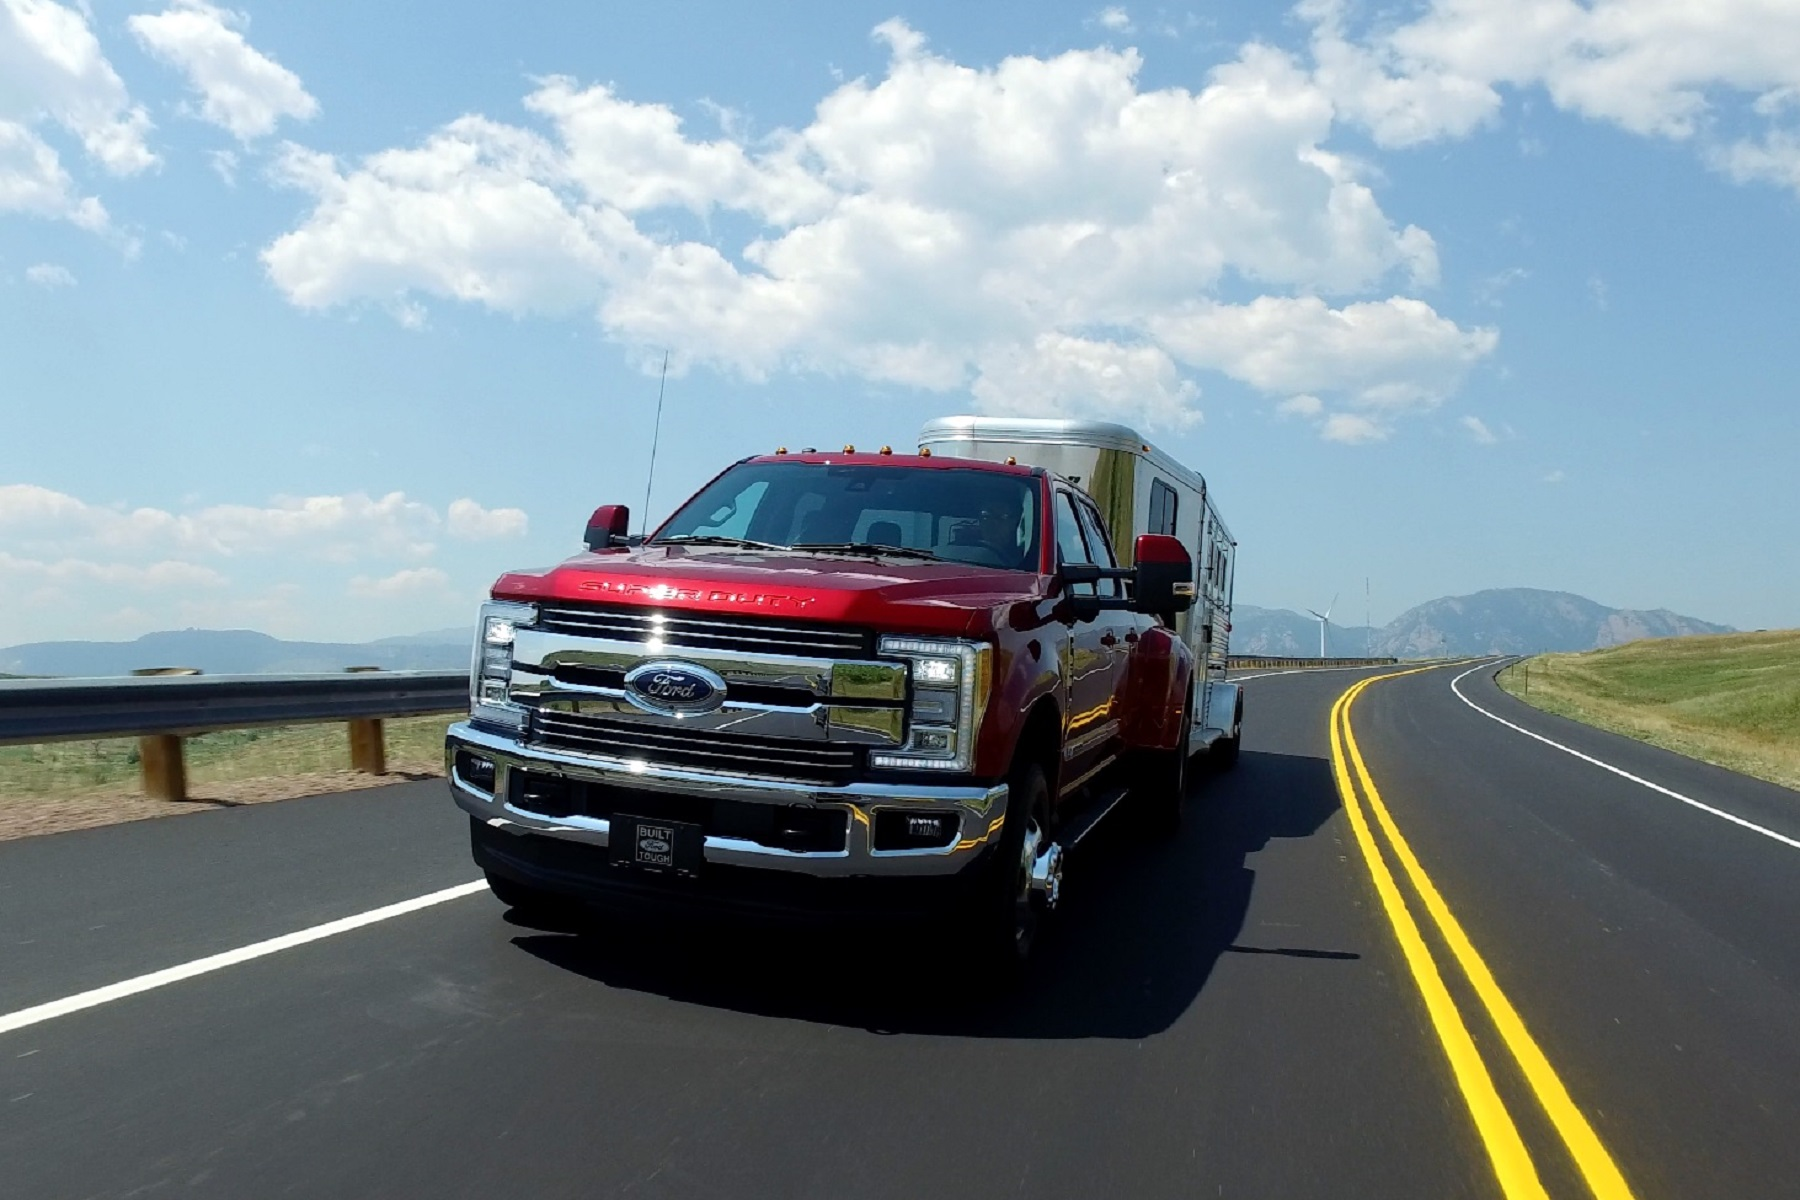 Manufacturer photo: The 2017 Ford Super Duty has 17 new class-exclusive features, and up to 925 lb.-ft